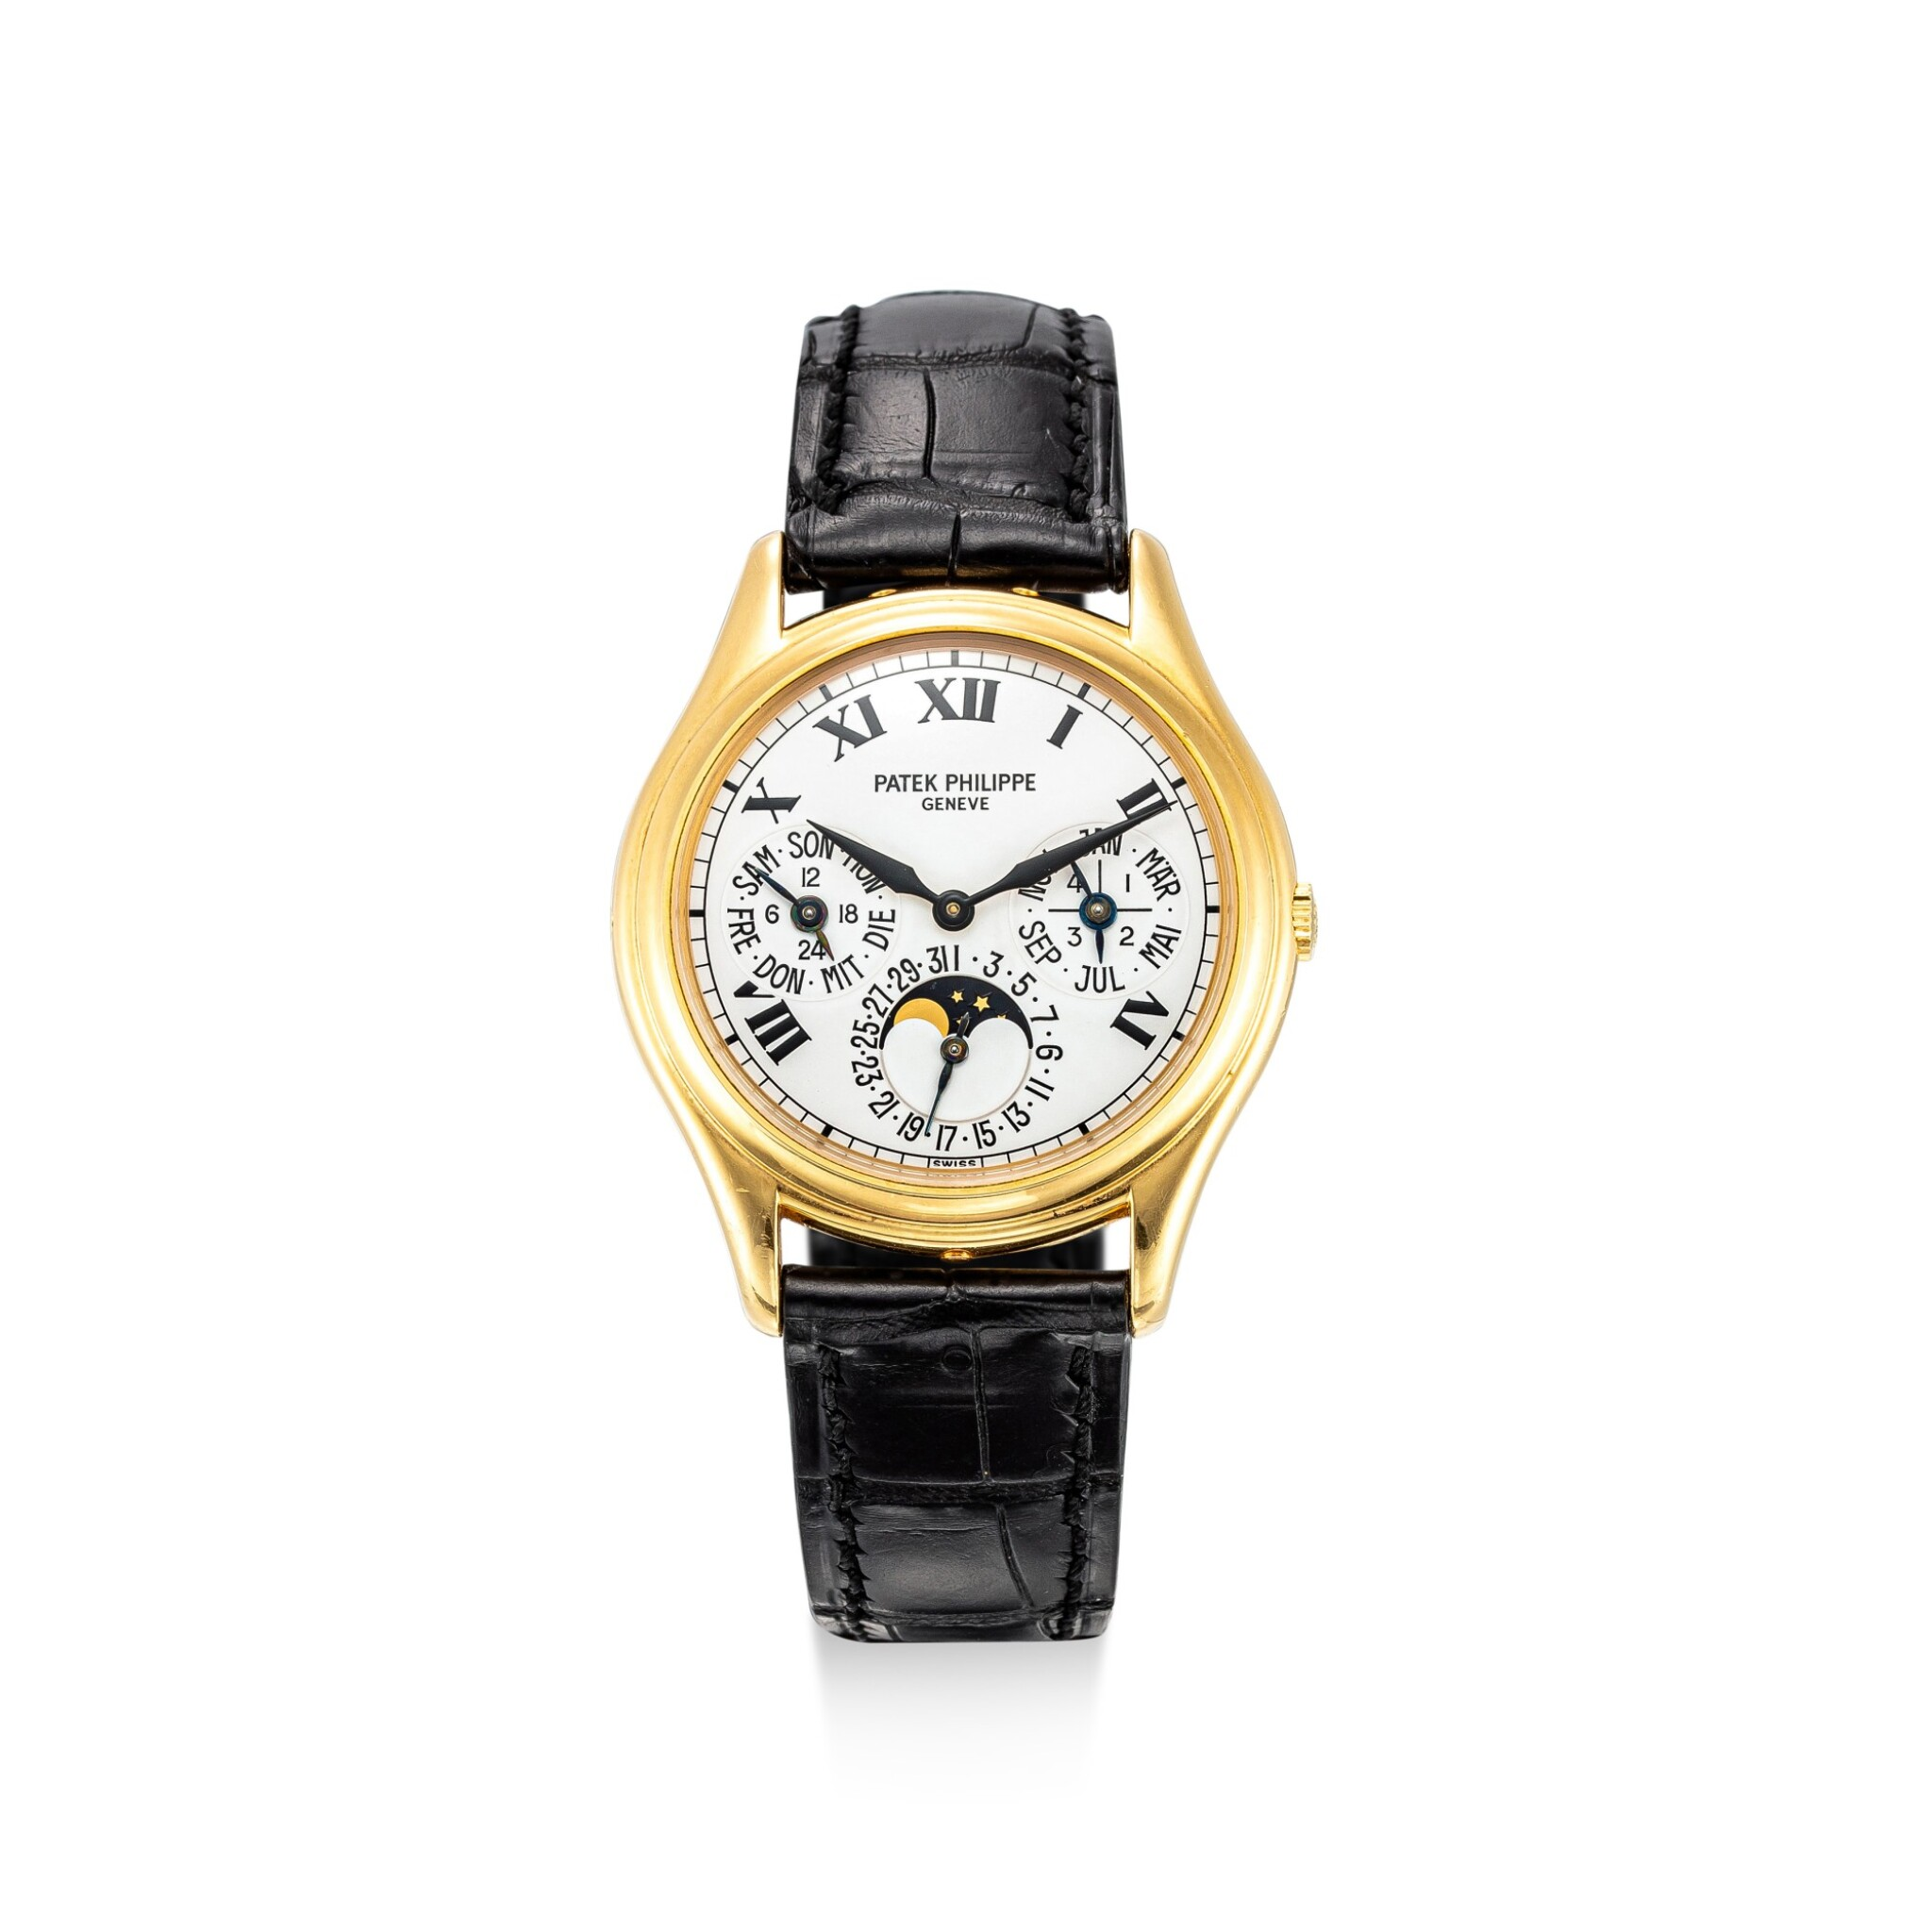 View full screen - View 1 of Lot 4001. PATEK PHILIPPE | REFERENCE 3940, A YELLOW GOLD PERPETUAL CALENDAR WRISTWATCH WITH MOON PHASES, 24 HOURS AND LEAP YEAR INDICATION, CIRCA 2005.